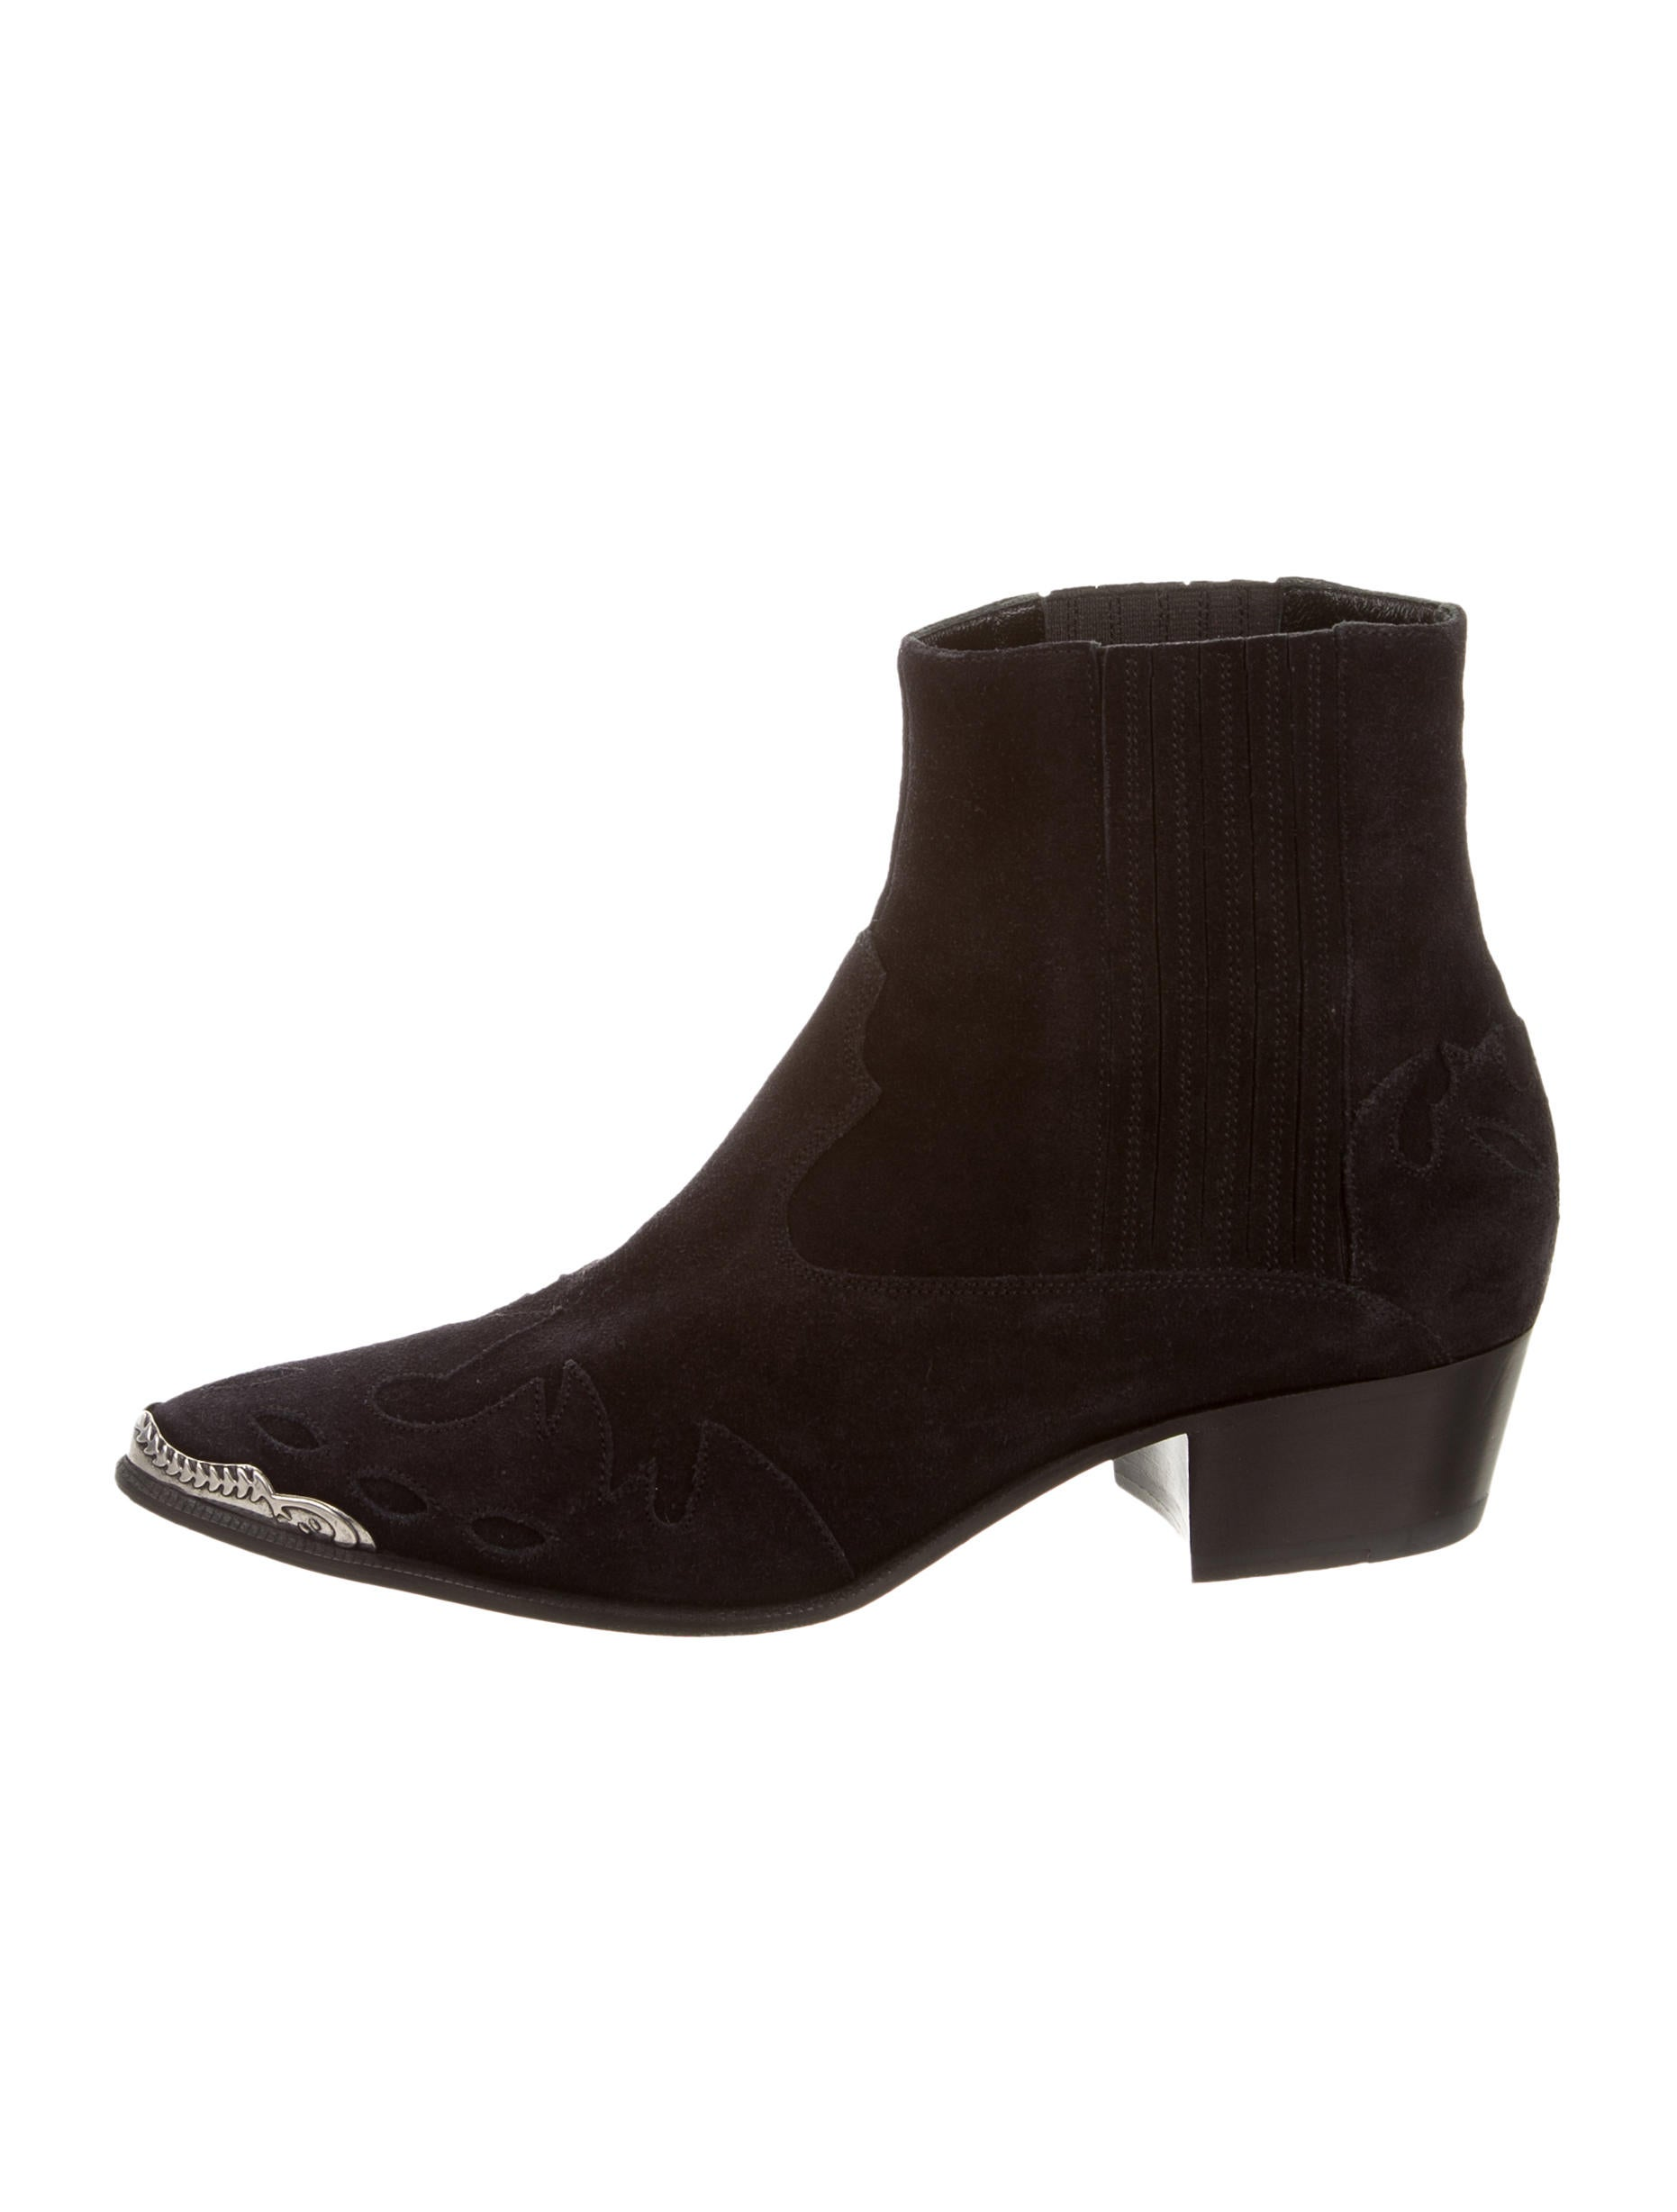 laurent suede pointed toe ankle boots shoes